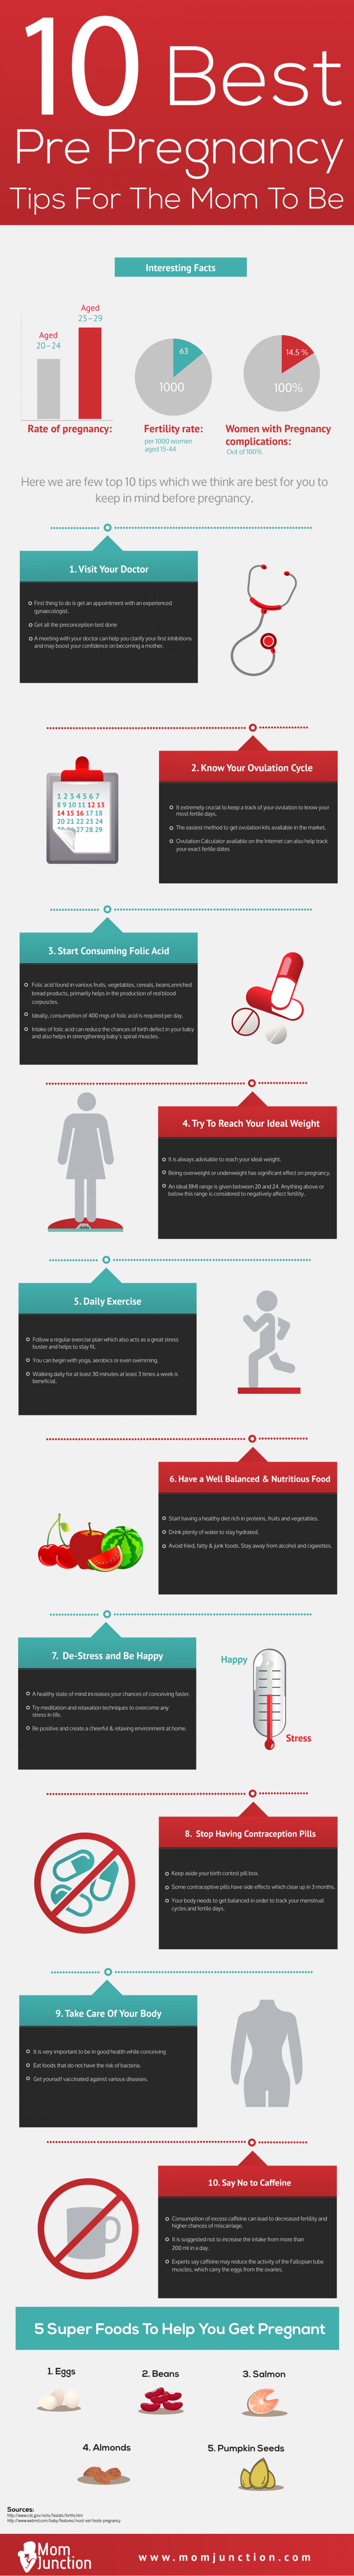 10 Best Before Pregnancy Tips For The Mom To Be Infographic